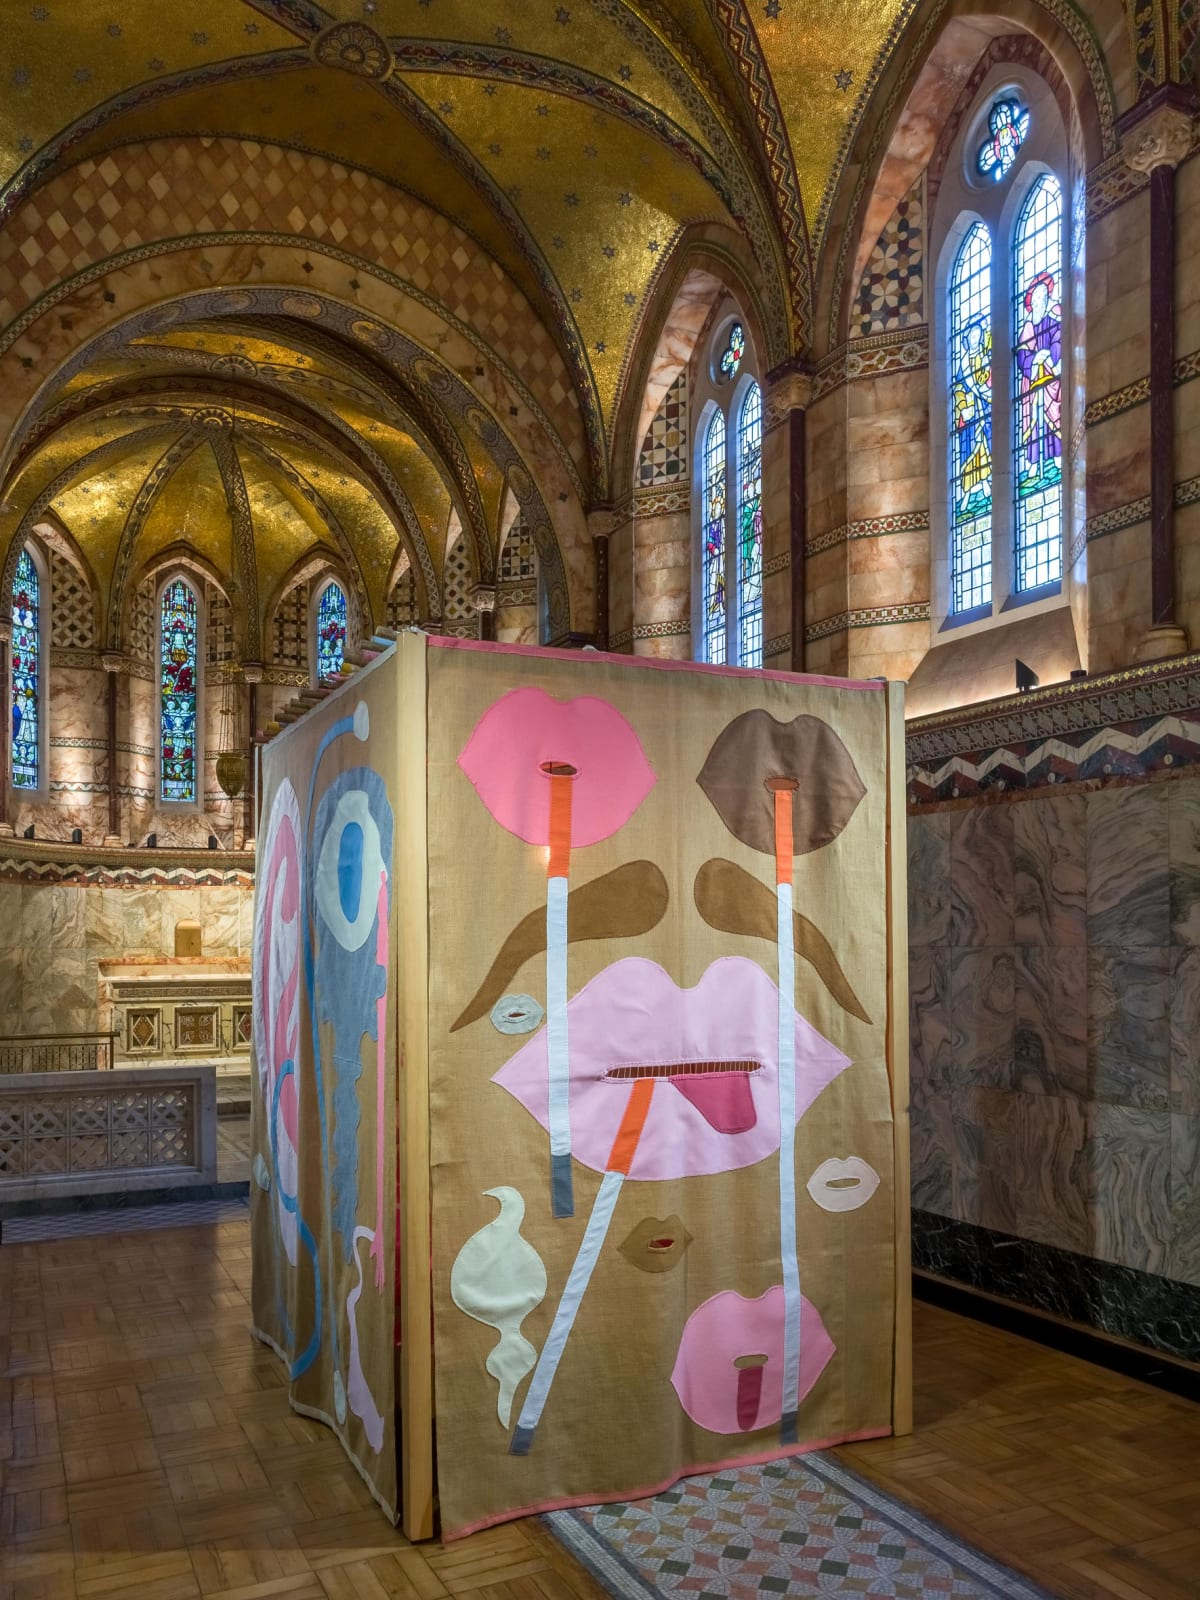 <p>Installation view: 'My biggest fear is that someone will crawl into it', Fitzrovia Chapel, London (2019). <span>Photo by Mark Blower.</span></p>